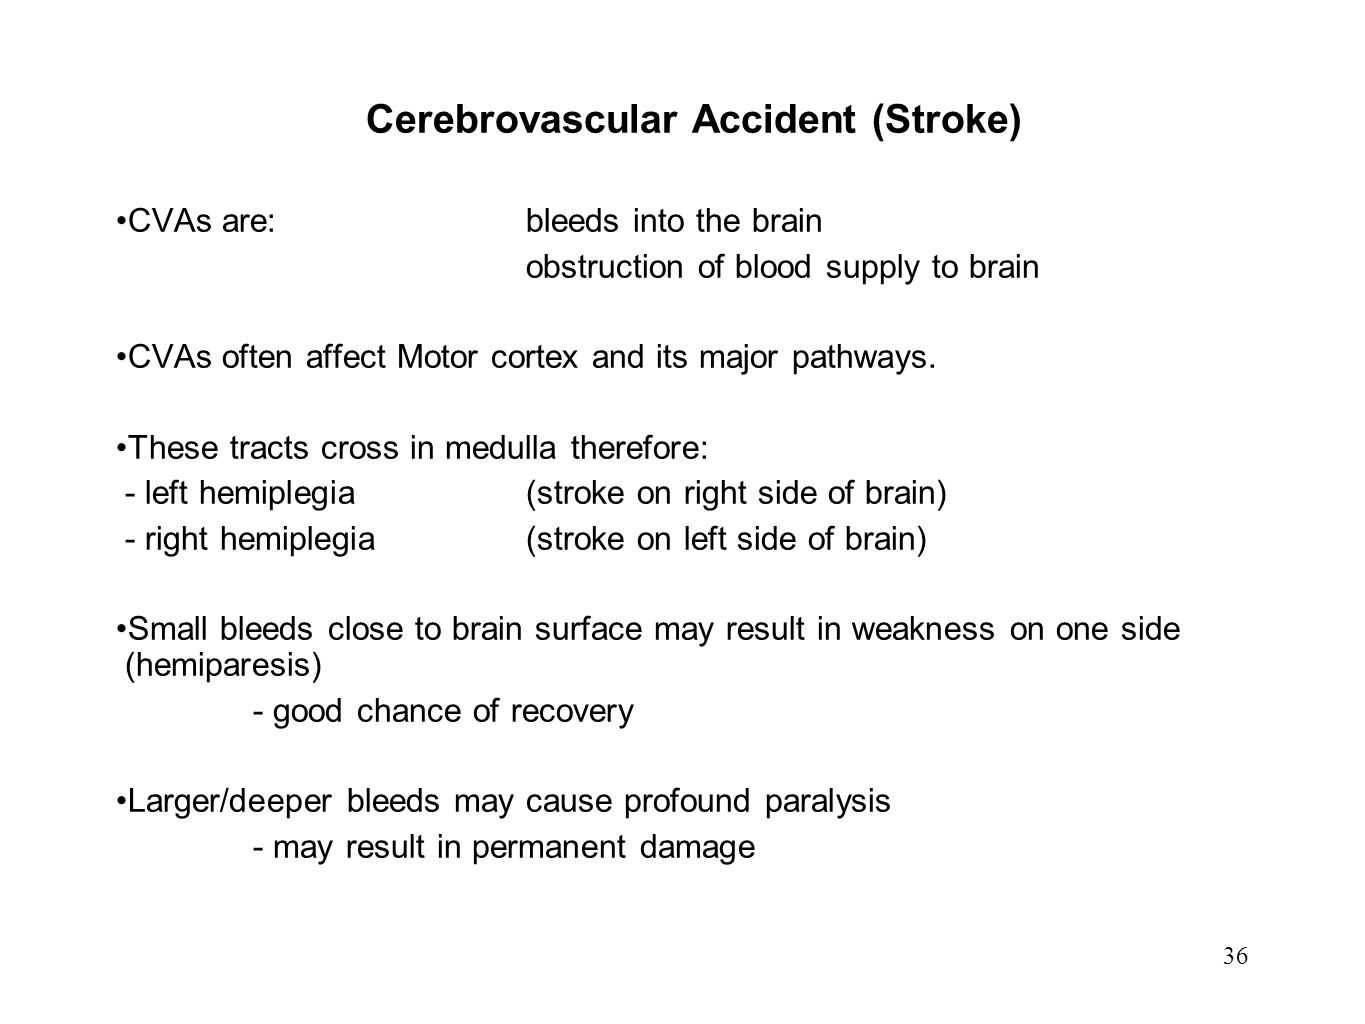 36 Cerebrovascular Accident (Stroke) CVAs are:bleeds into the brain obstruction of blood supply to brain CVAs often affect Motor cortex and its major